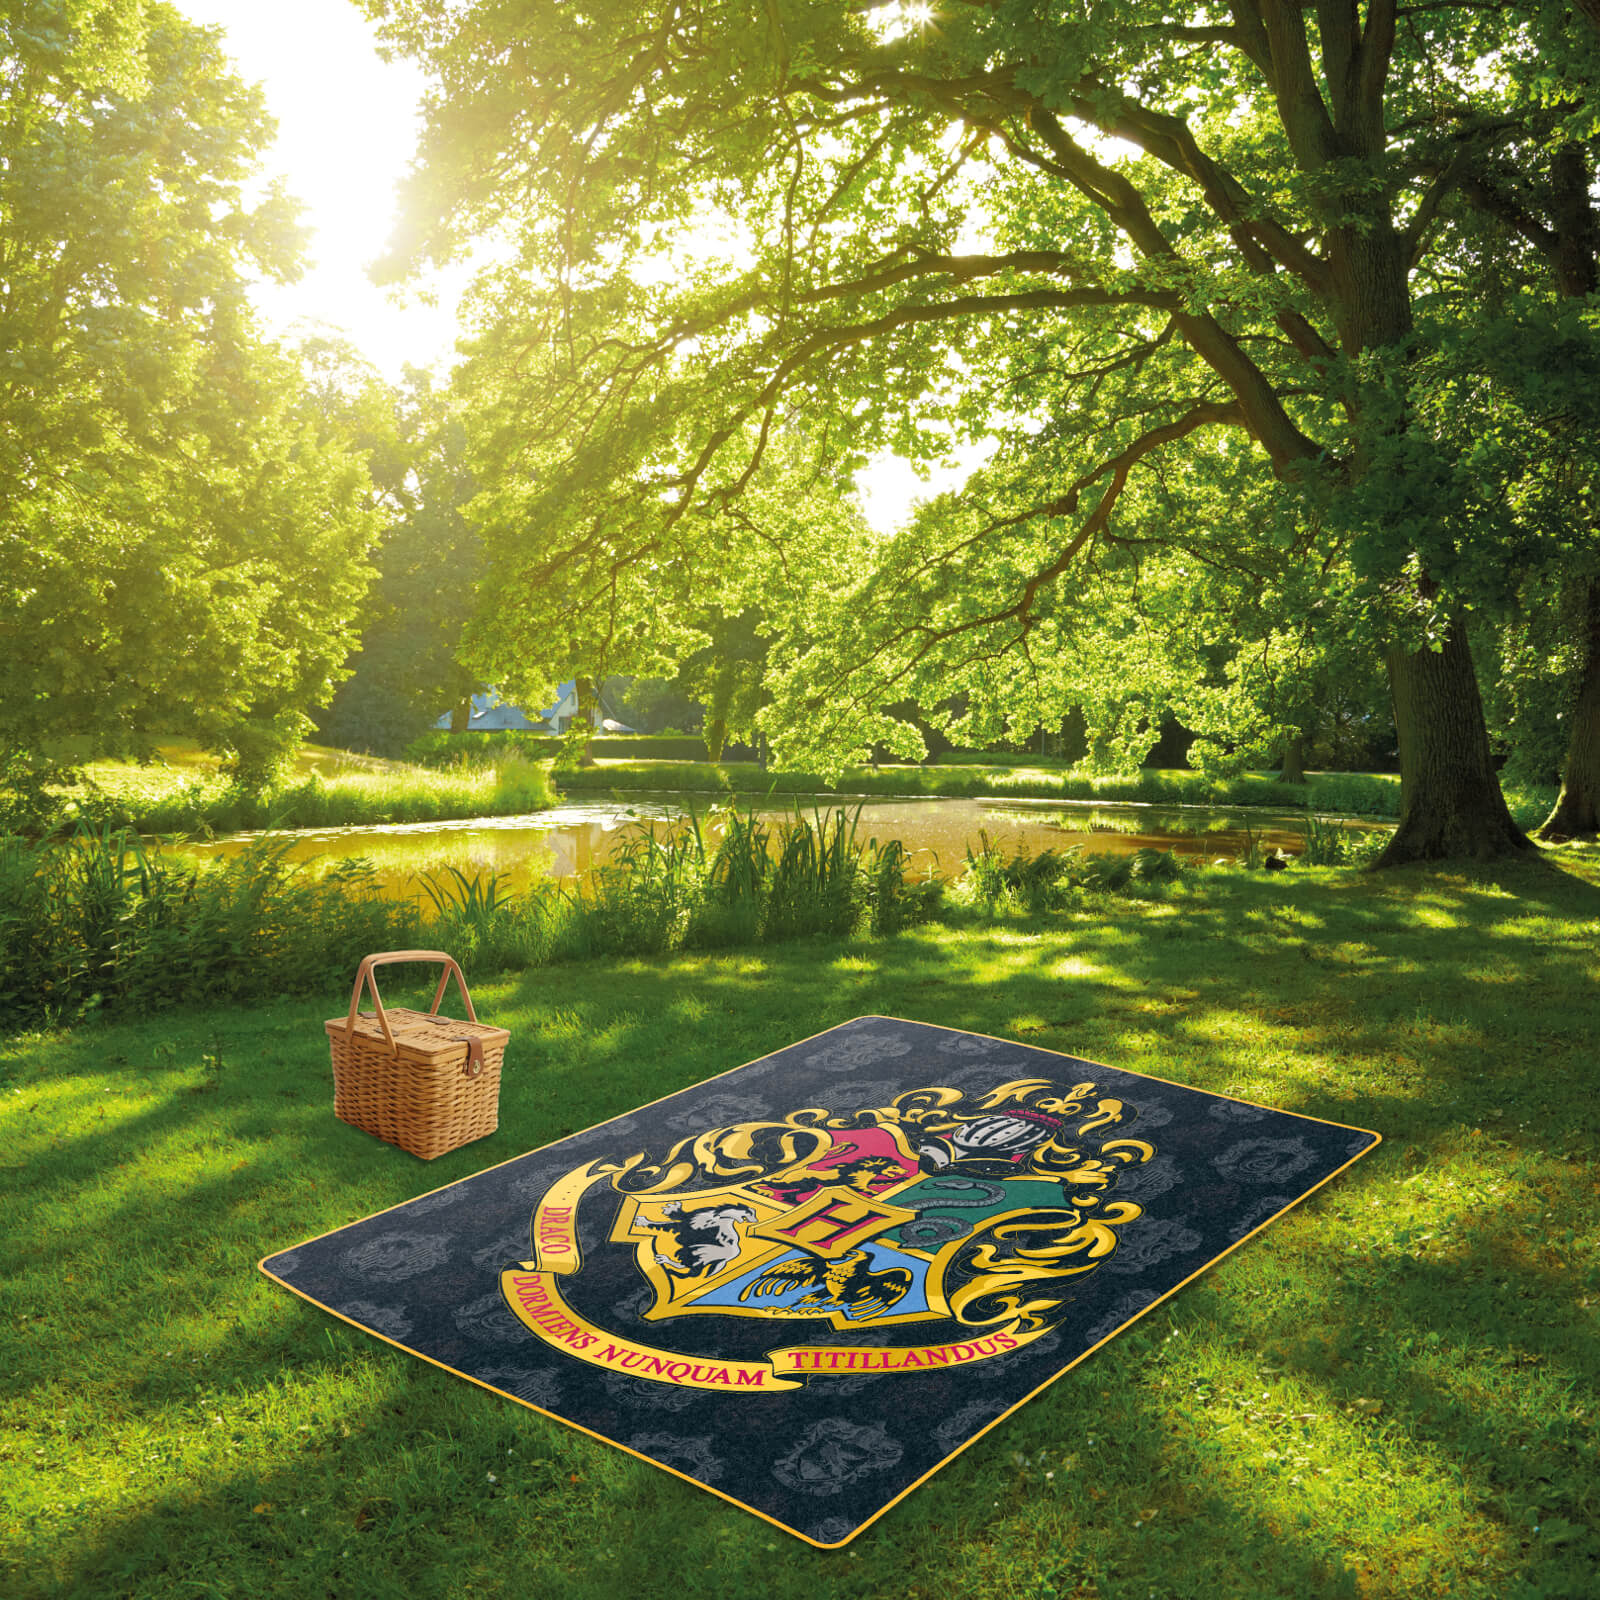 Harry Potter Hogwarts Crest Picnic Blanket Iwoot